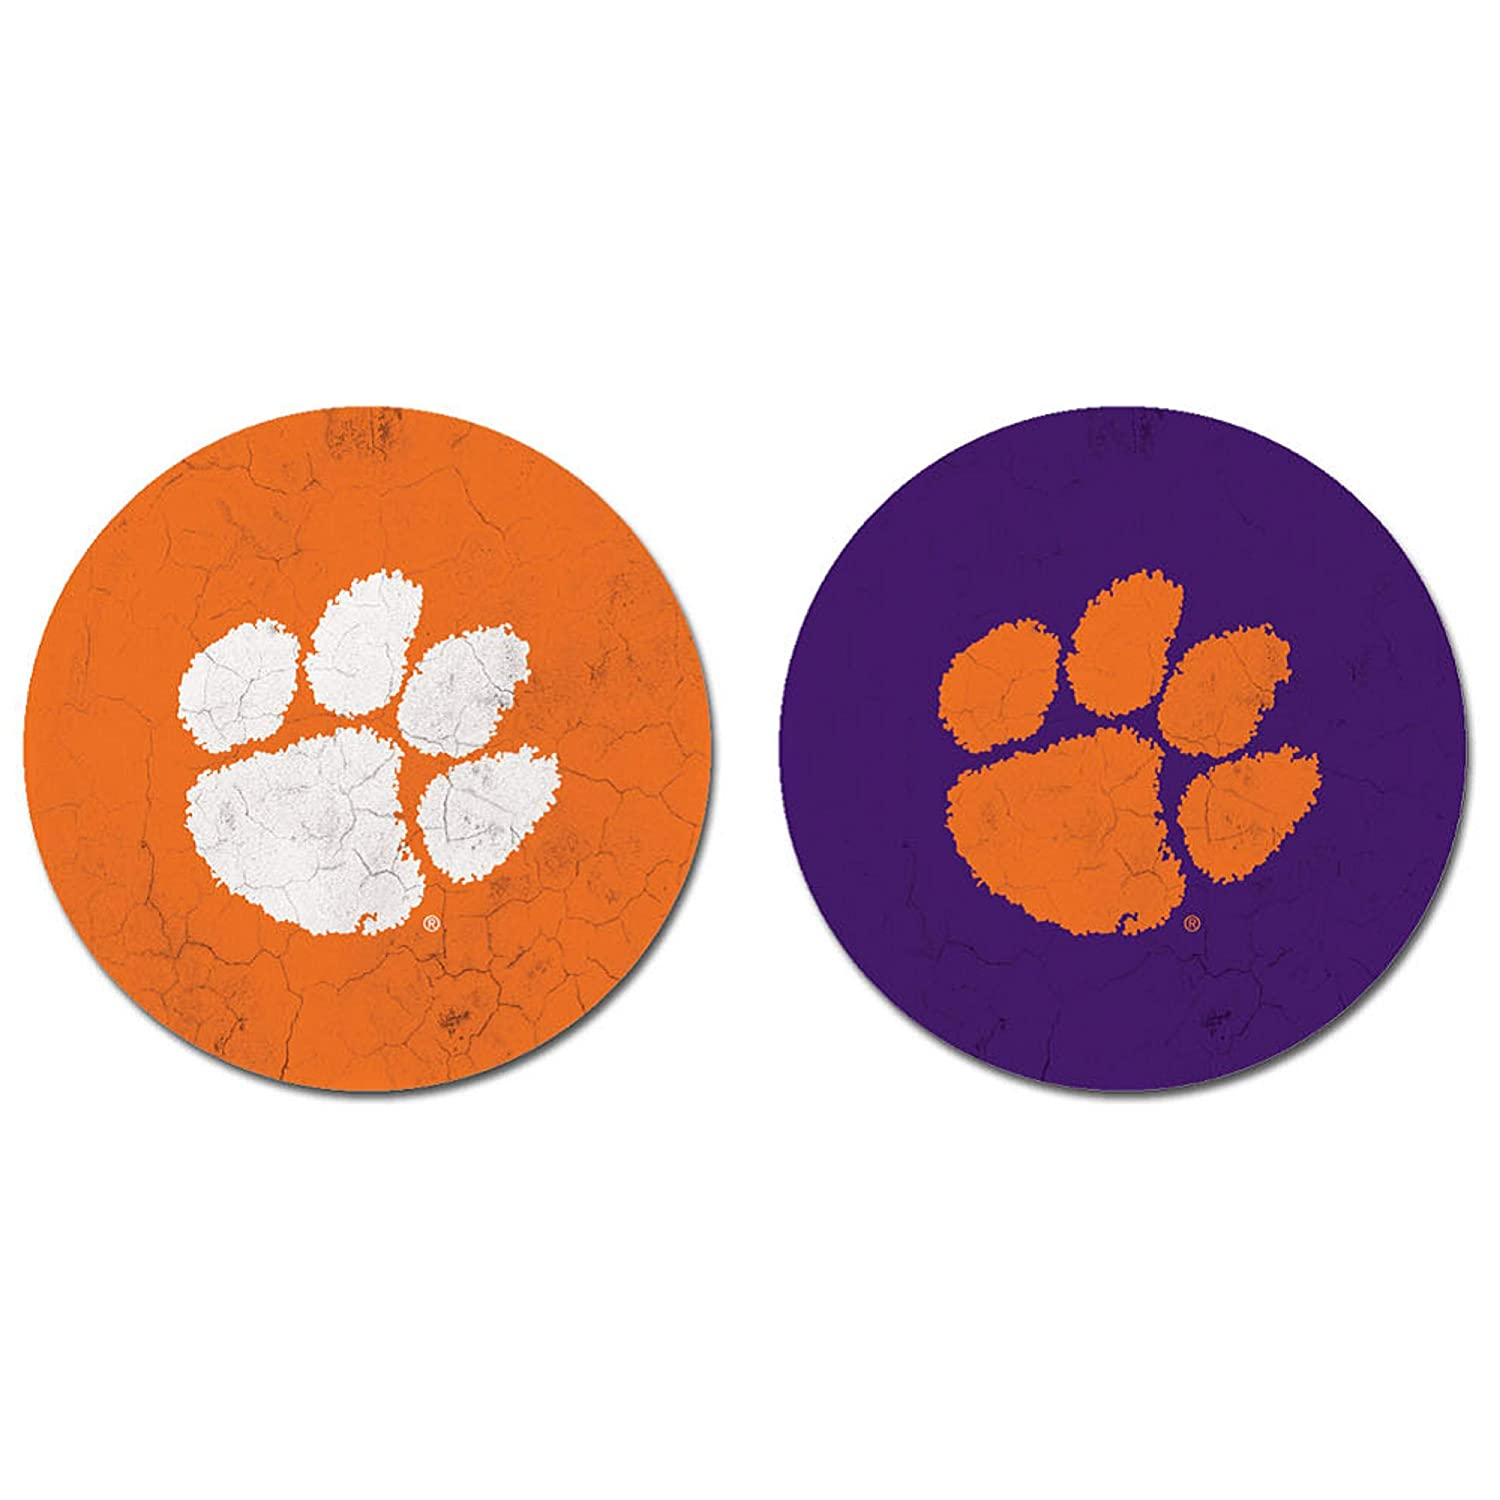 Sandstone One Size NCAA Fan Shop Clemson Tigers Legacy Thirsty Car Coaster 2-Pack